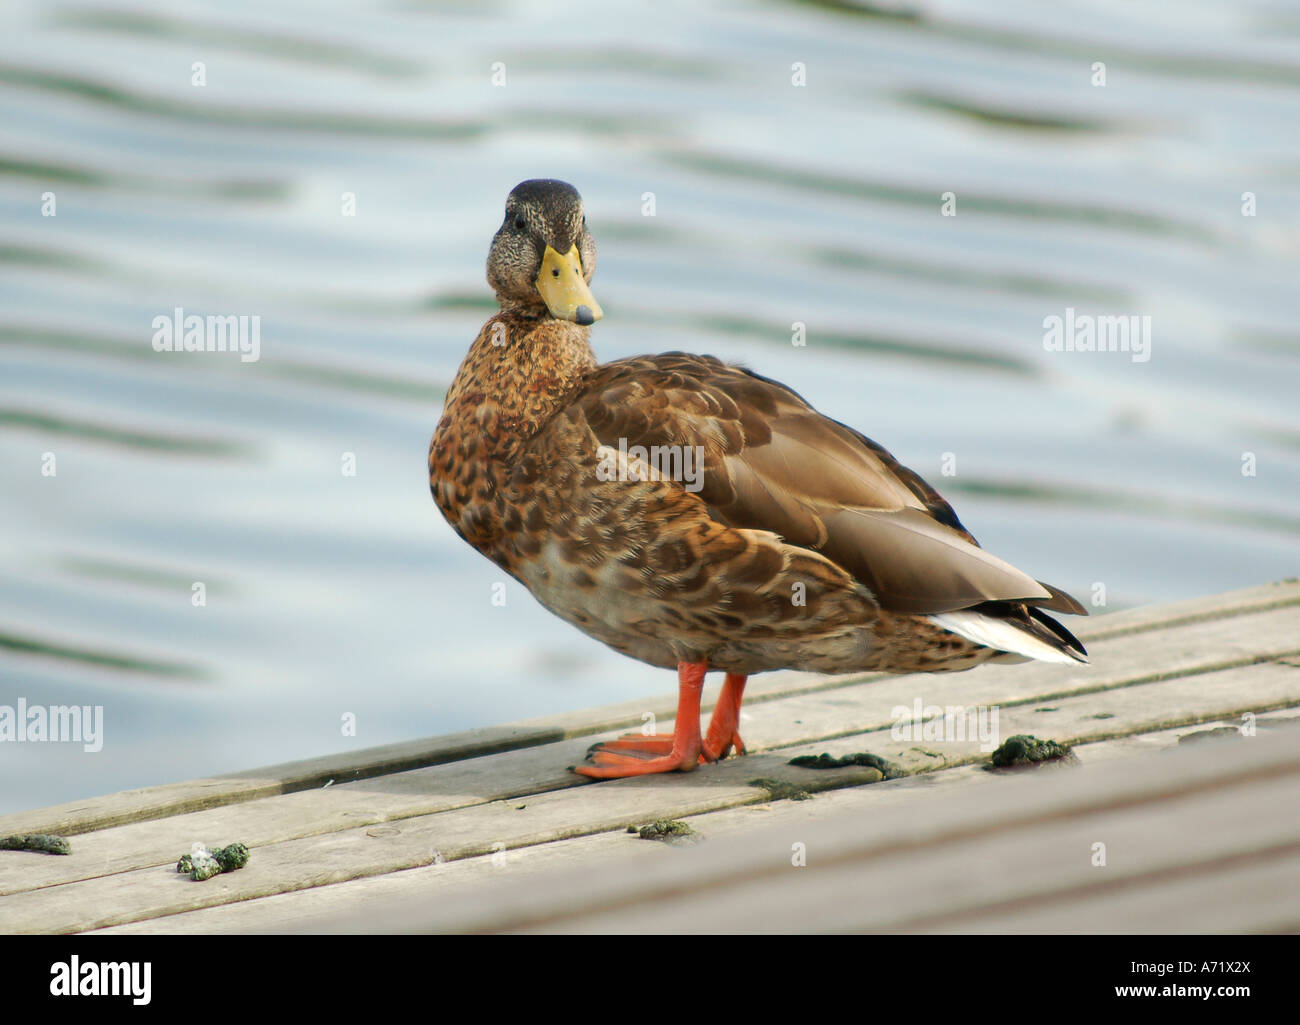 a young male mallard duck anas platyrhynchos looking into the